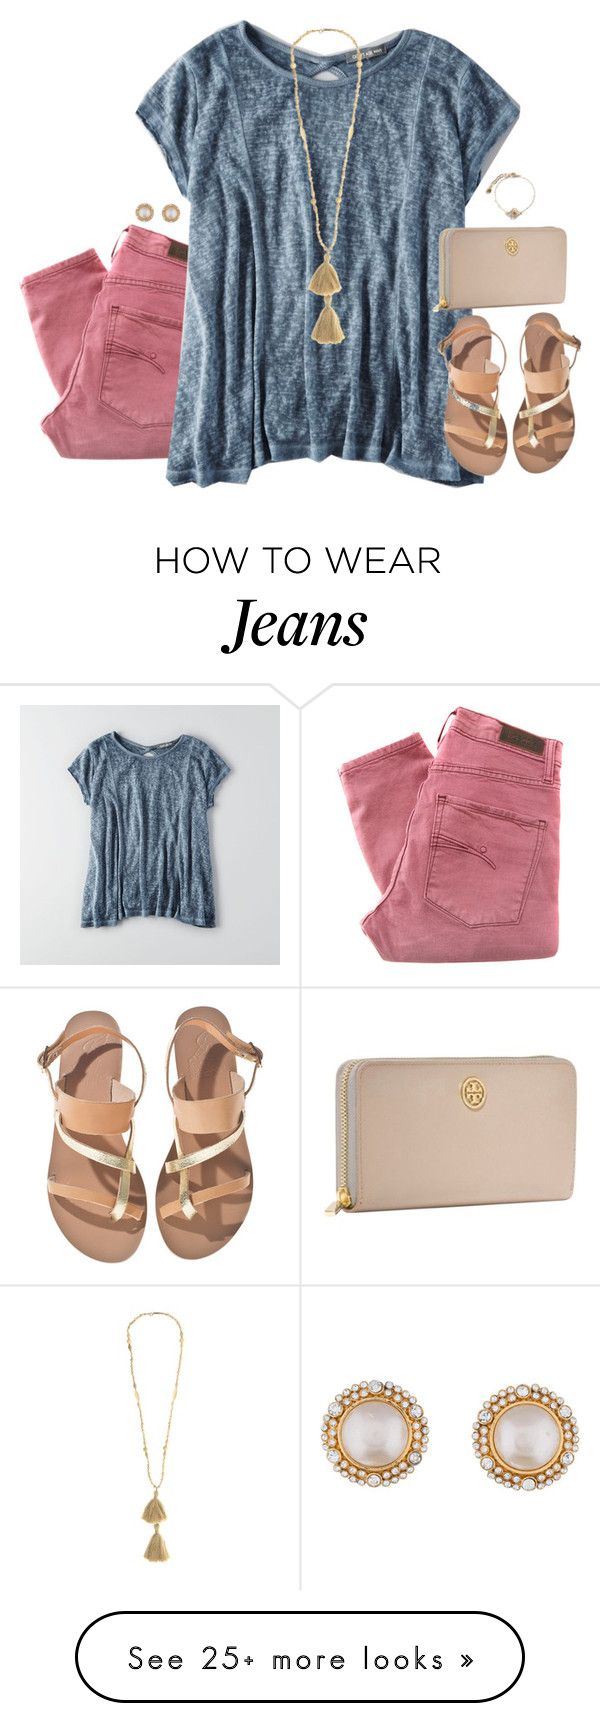 """""""why didn't the vampire attack Taylor Swift?"""" by kaley-ii on Polyvore featuring Nobody Denim, American Eagle Outfitters, Ancient Greek Sandals, Isabel Marant, Tory Burch, Vera Bradley and Chanel"""